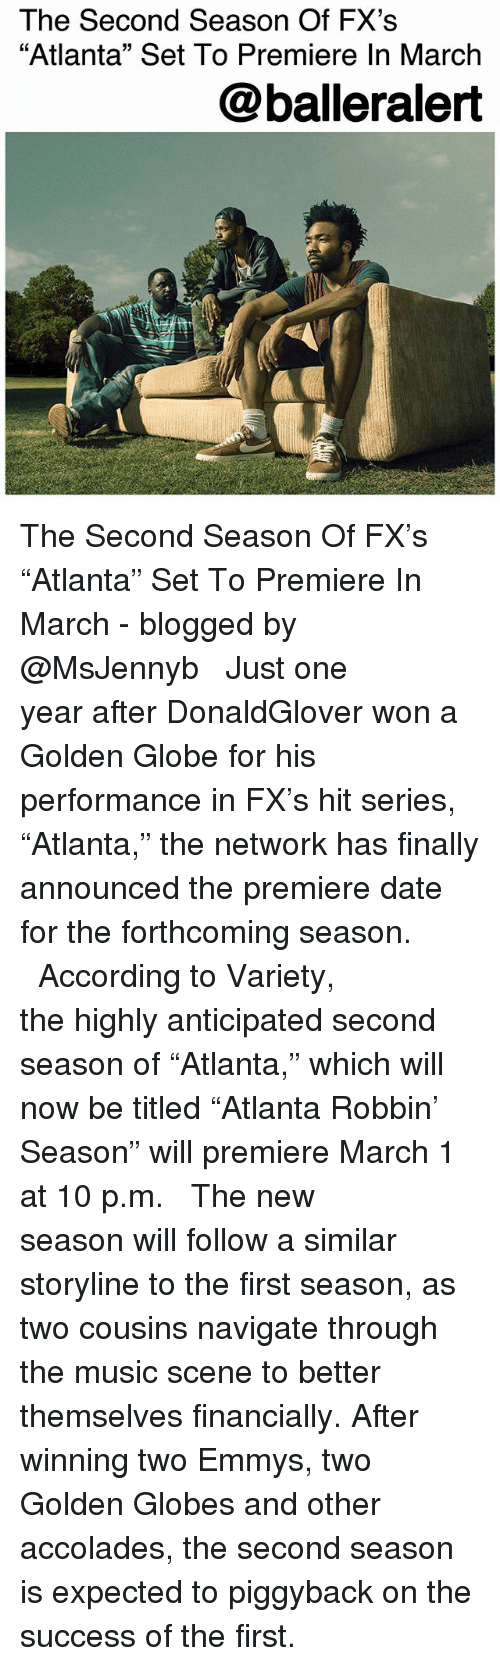 "Golden Globes, Memes, and Music: The Second Season Of FX's  ""Atlanta"" Set To Premiere In March  @balleralert The Second Season Of FX's ""Atlanta"" Set To Premiere In March - blogged by @MsJennyb ⠀⠀⠀⠀⠀⠀⠀ ⠀⠀⠀⠀⠀⠀⠀ Just one year after DonaldGlover won a Golden Globe for his performance in FX's hit series, ""Atlanta,"" the network has finally announced the premiere date for the forthcoming season. ⠀⠀⠀⠀⠀⠀⠀ ⠀⠀⠀⠀⠀⠀⠀ According to Variety, the highly anticipated second season of ""Atlanta,"" which will now be titled ""Atlanta Robbin' Season"" will premiere March 1 at 10 p.m. ⠀⠀⠀⠀⠀⠀⠀ ⠀⠀⠀⠀⠀⠀⠀ The new season will follow a similar storyline to the first season, as two cousins navigate through the music scene to better themselves financially. After winning two Emmys, two Golden Globes and other accolades, the second season is expected to piggyback on the success of the first."